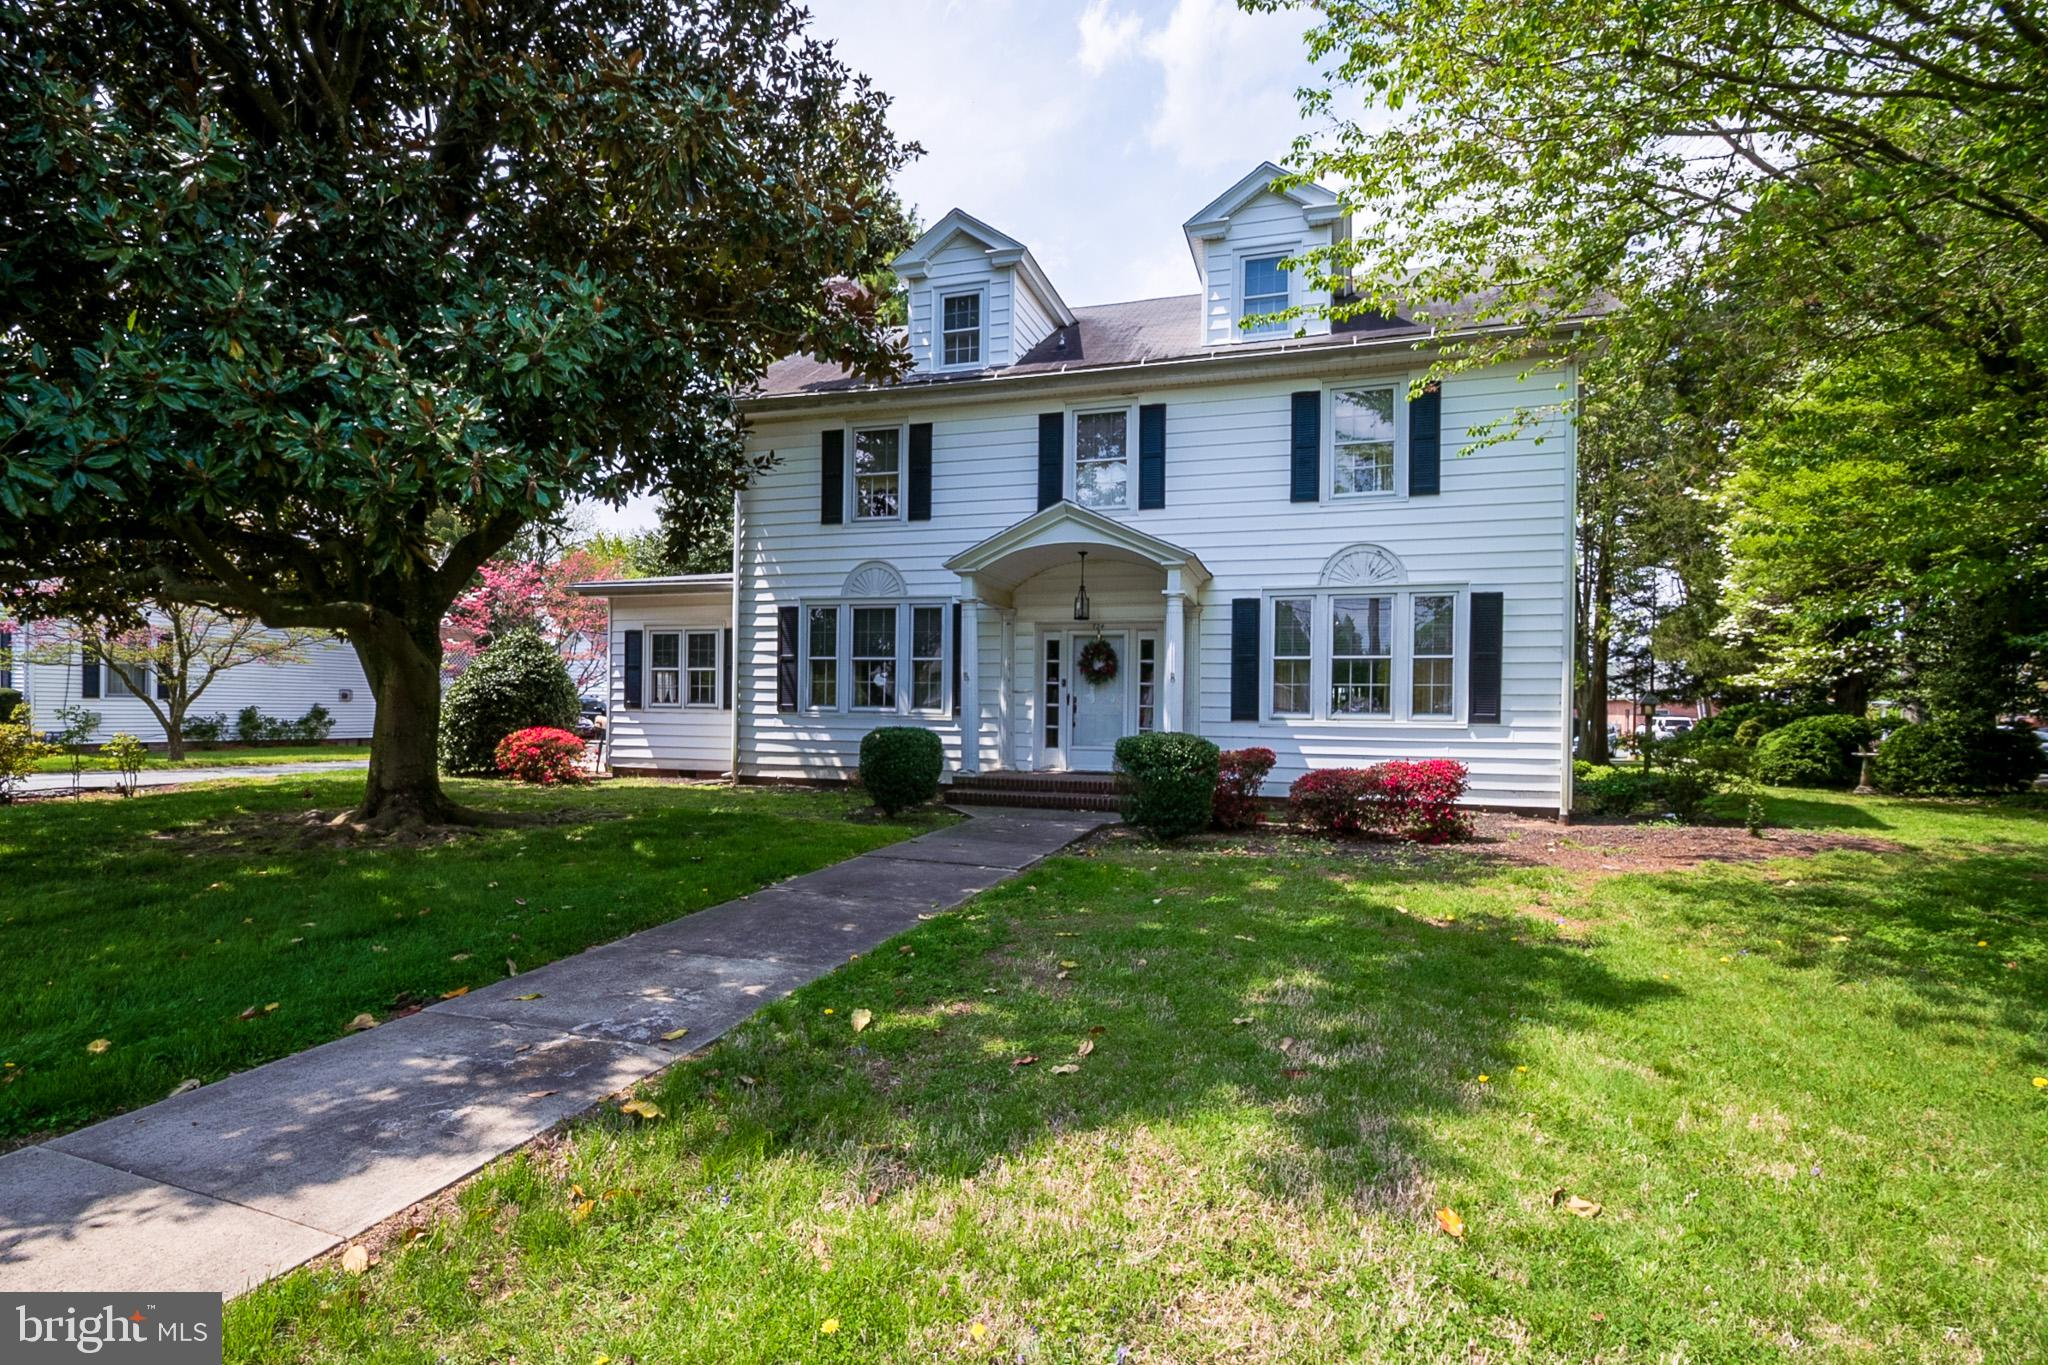 Take a step back into time with this classic 3 story Colonial in Downtown Dover.   A quick stroll to the Green and the State Capitol building.  High ceilings and large room sizes are what you'll find here, along with original hardwood flooring, large moldings and wainscoting. Check out the swinging door between the kitchen and the butler's pantry - charming features not seen in modern homes.   This stately home sits on a generous .42 acre lot and has a detached 2 car garage.   Think of the possibilities!  This classic can become a grand home once again with the right vision.